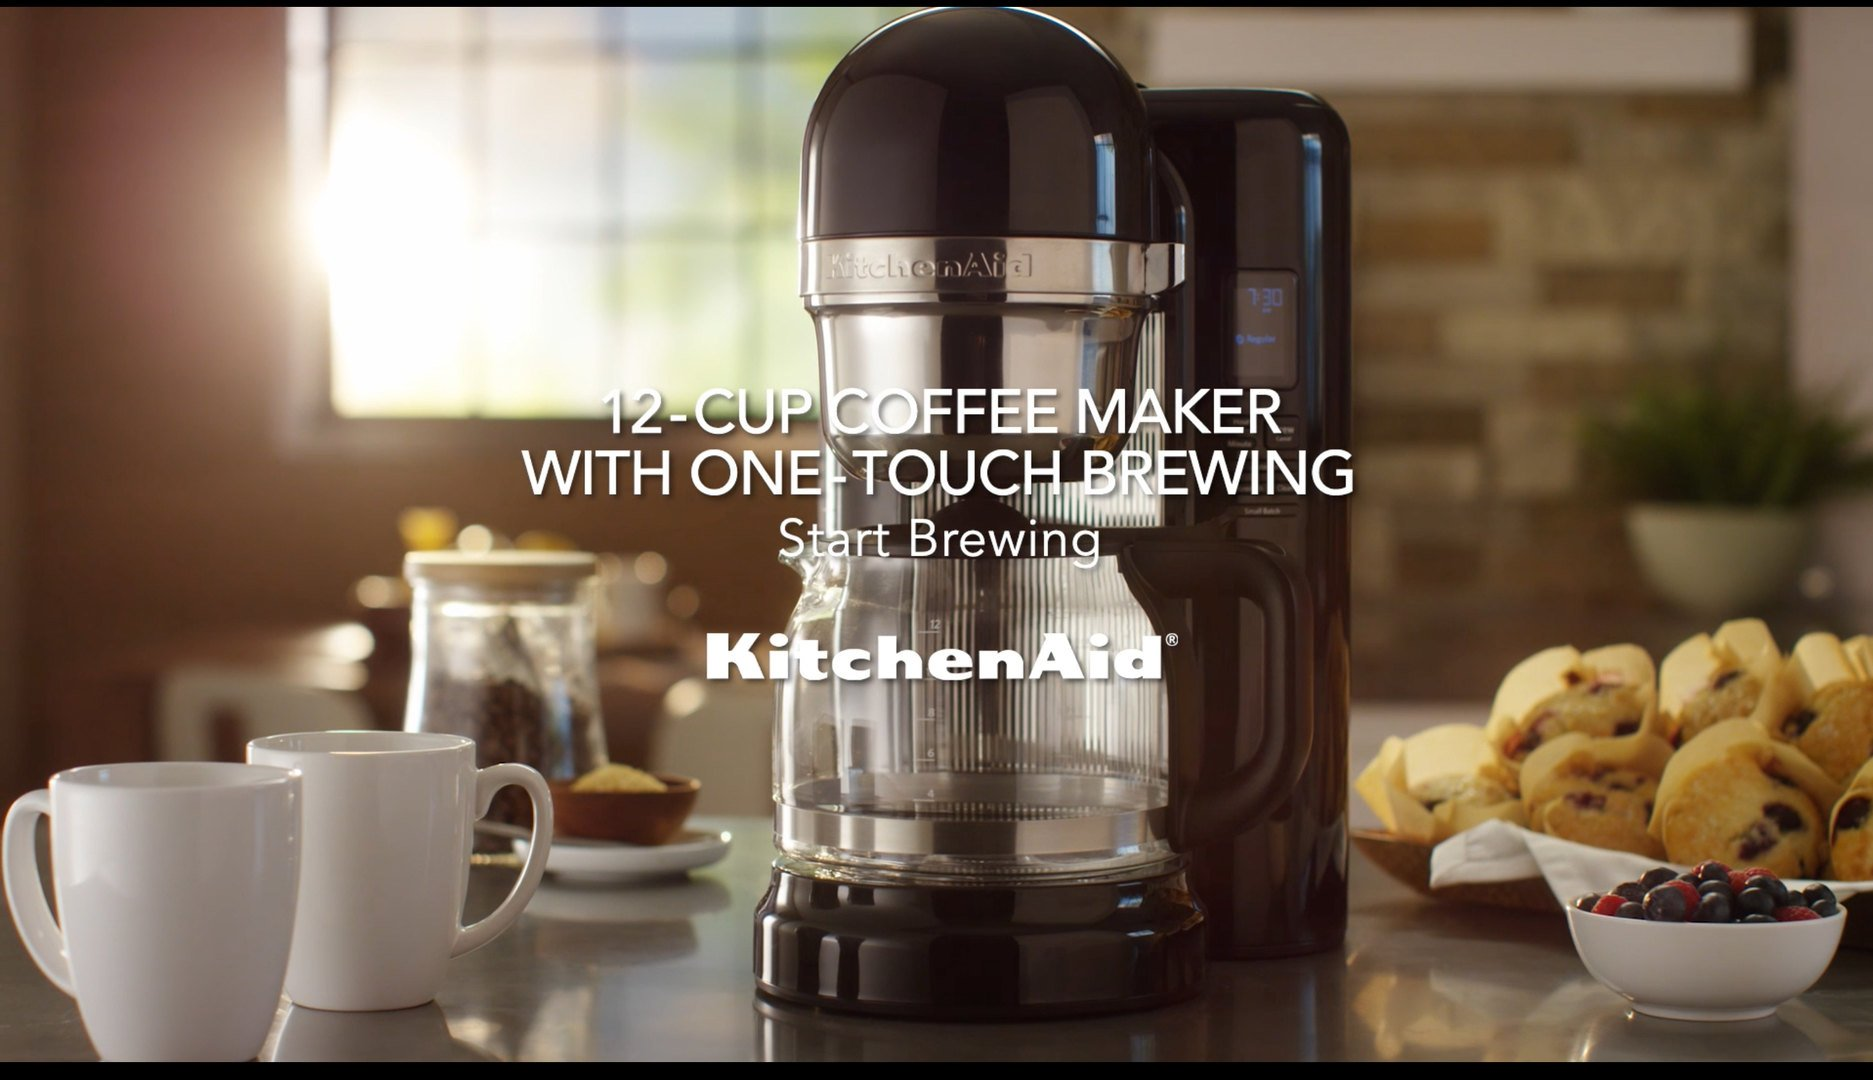 Using Your KitchenAid 12 Cup Coffee Maker with One Touch Brewing